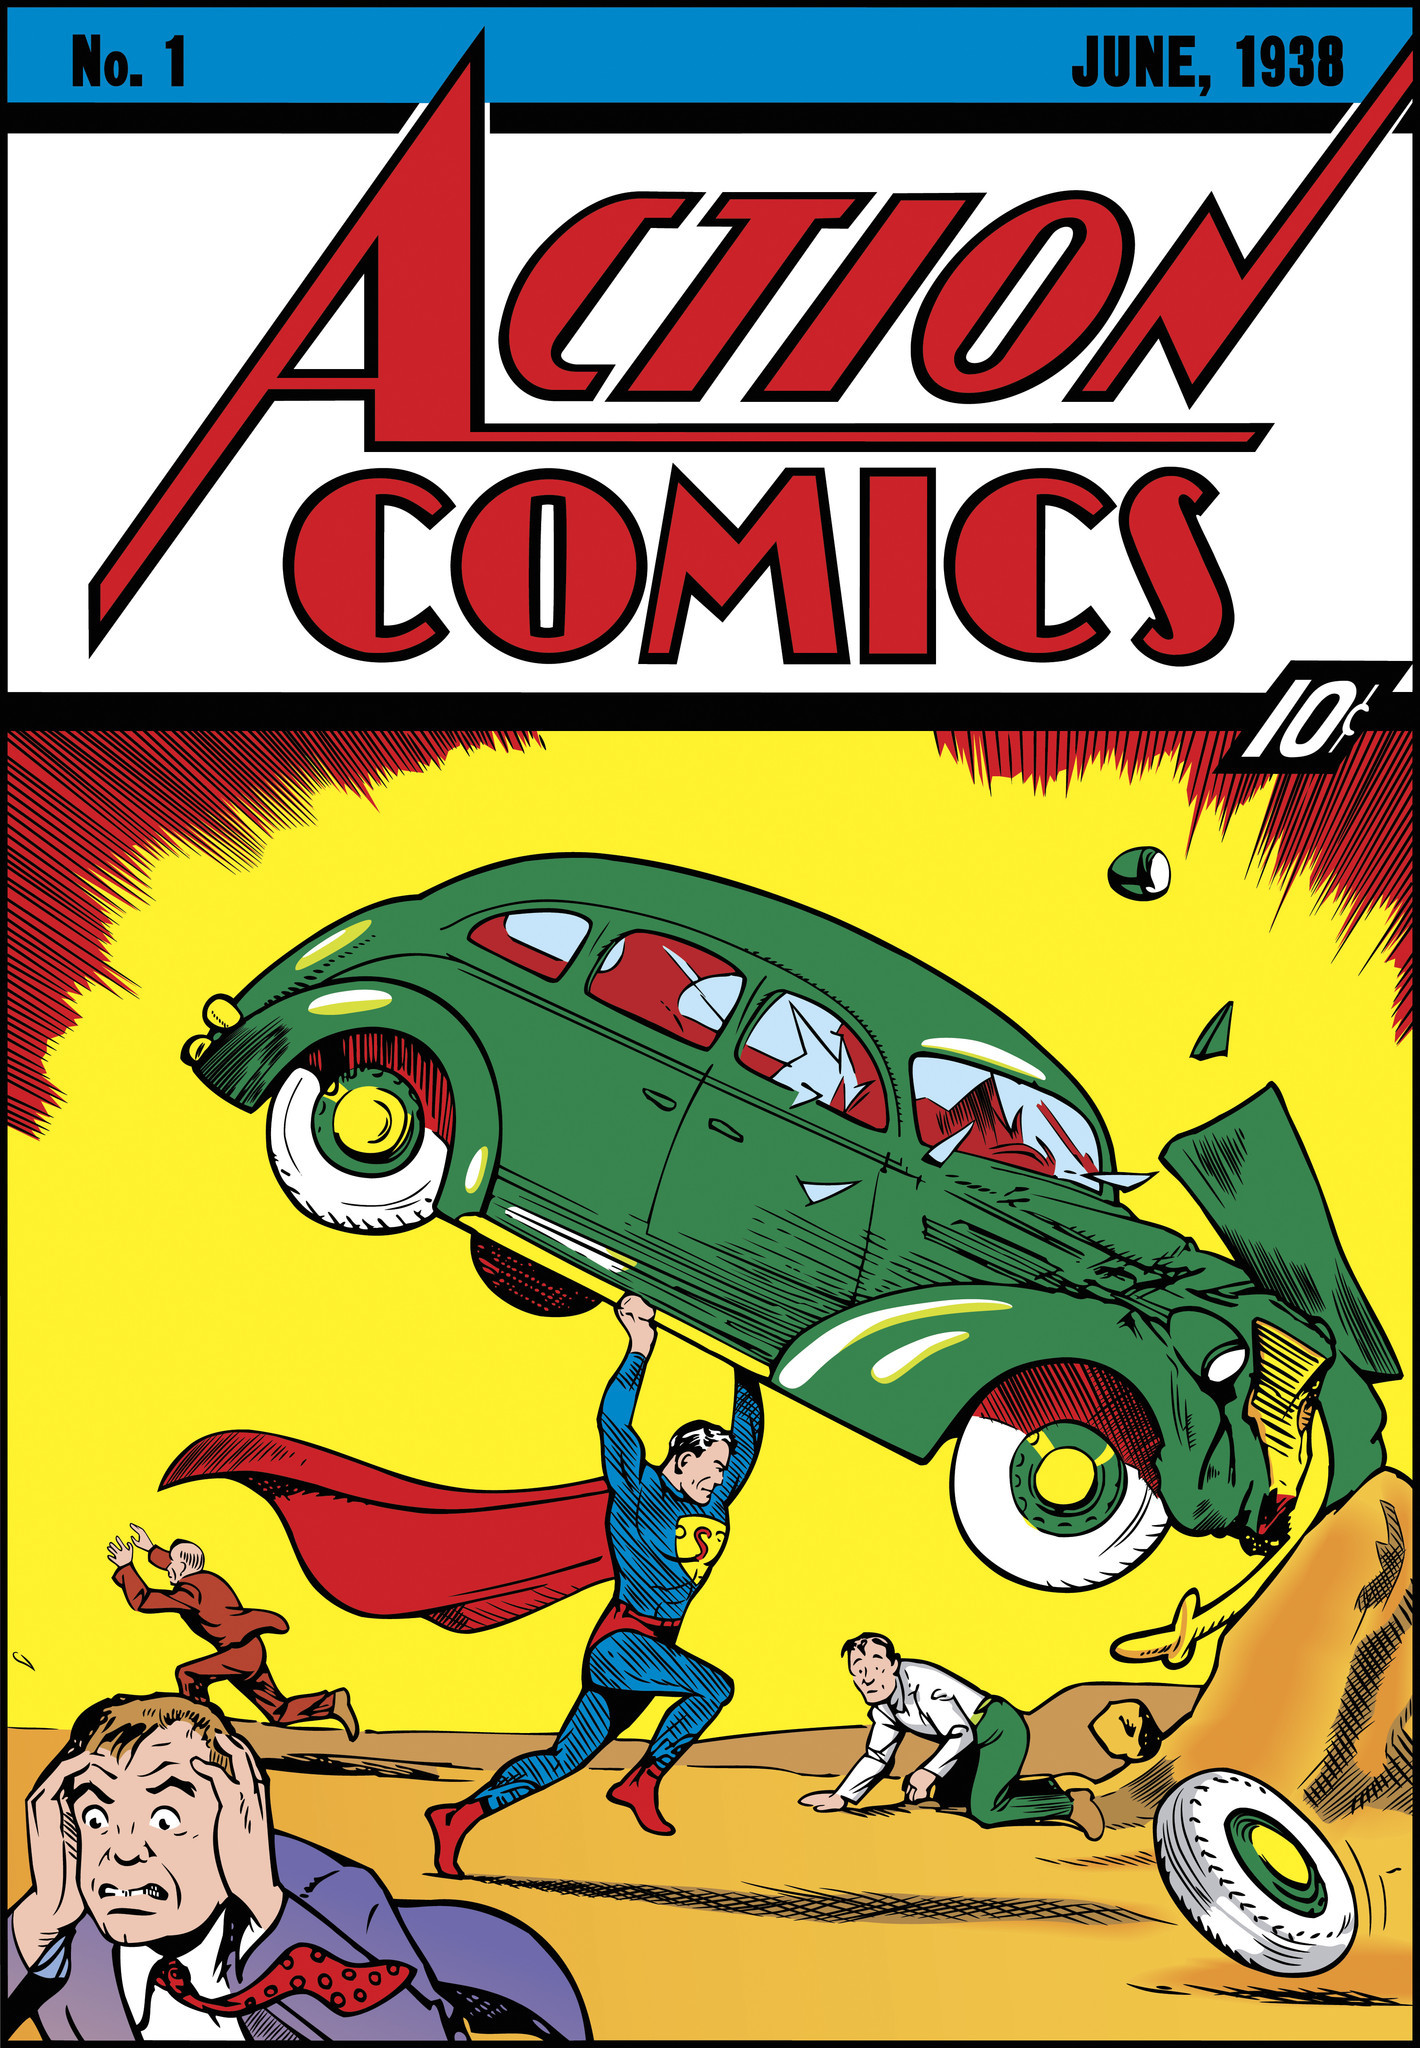 First Superman comic book sells for record-breaking $3.2 million - LA ...